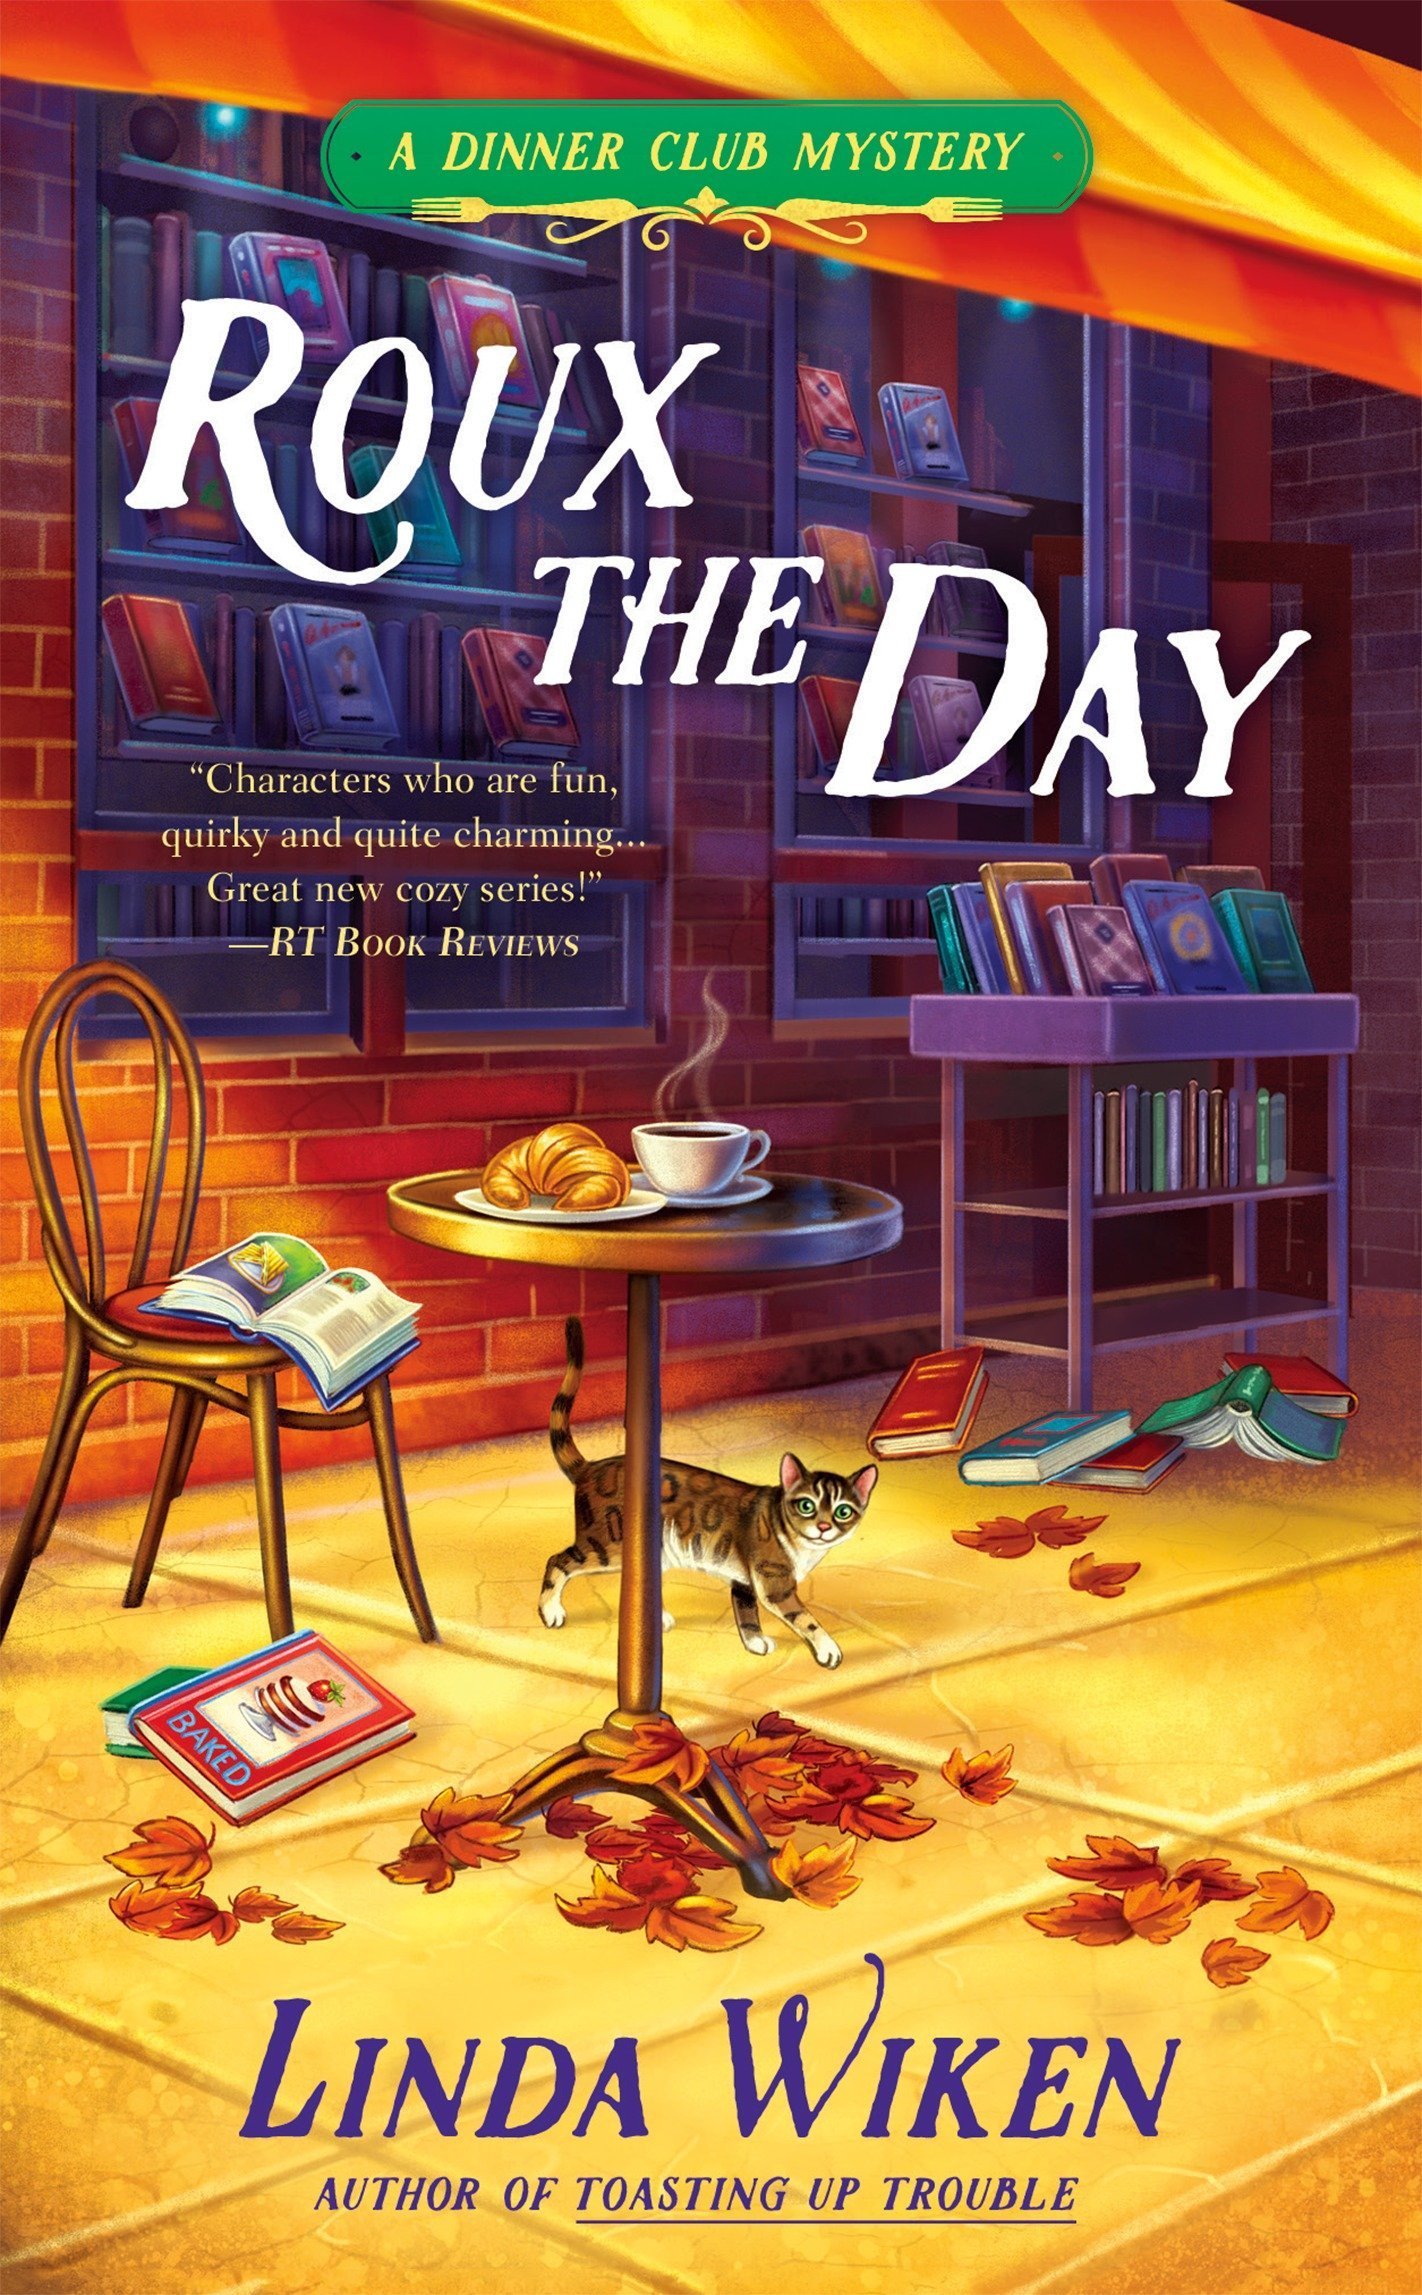 Amazon.com: Roux the Day (A Dinner Club Mystery) (9780425278222): Linda  Wiken: Books